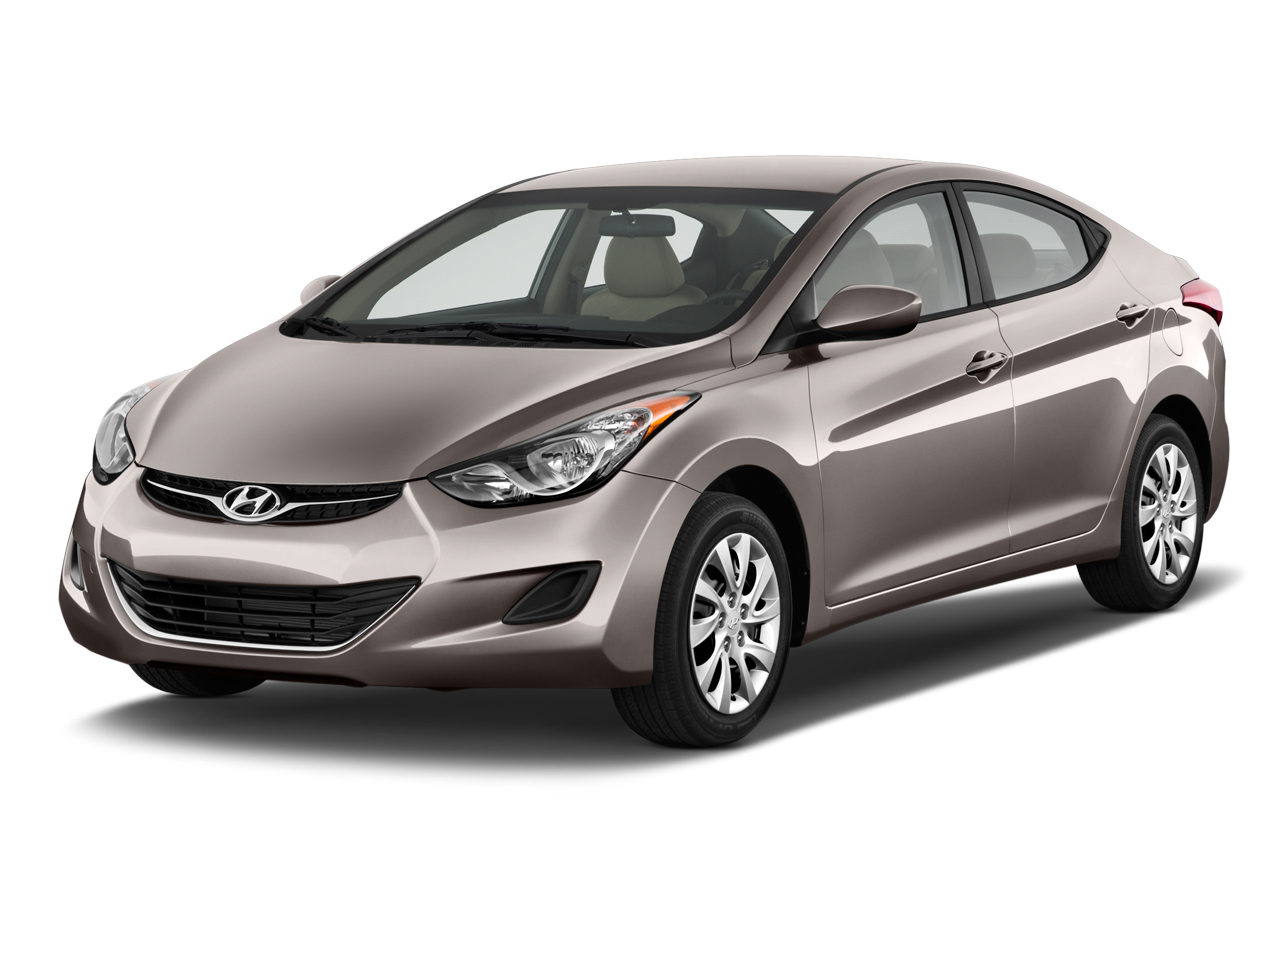 2012 hyundai elantra 4 door sedan auto gls alabama plant angular front exterior view 100356108. Black Bedroom Furniture Sets. Home Design Ideas